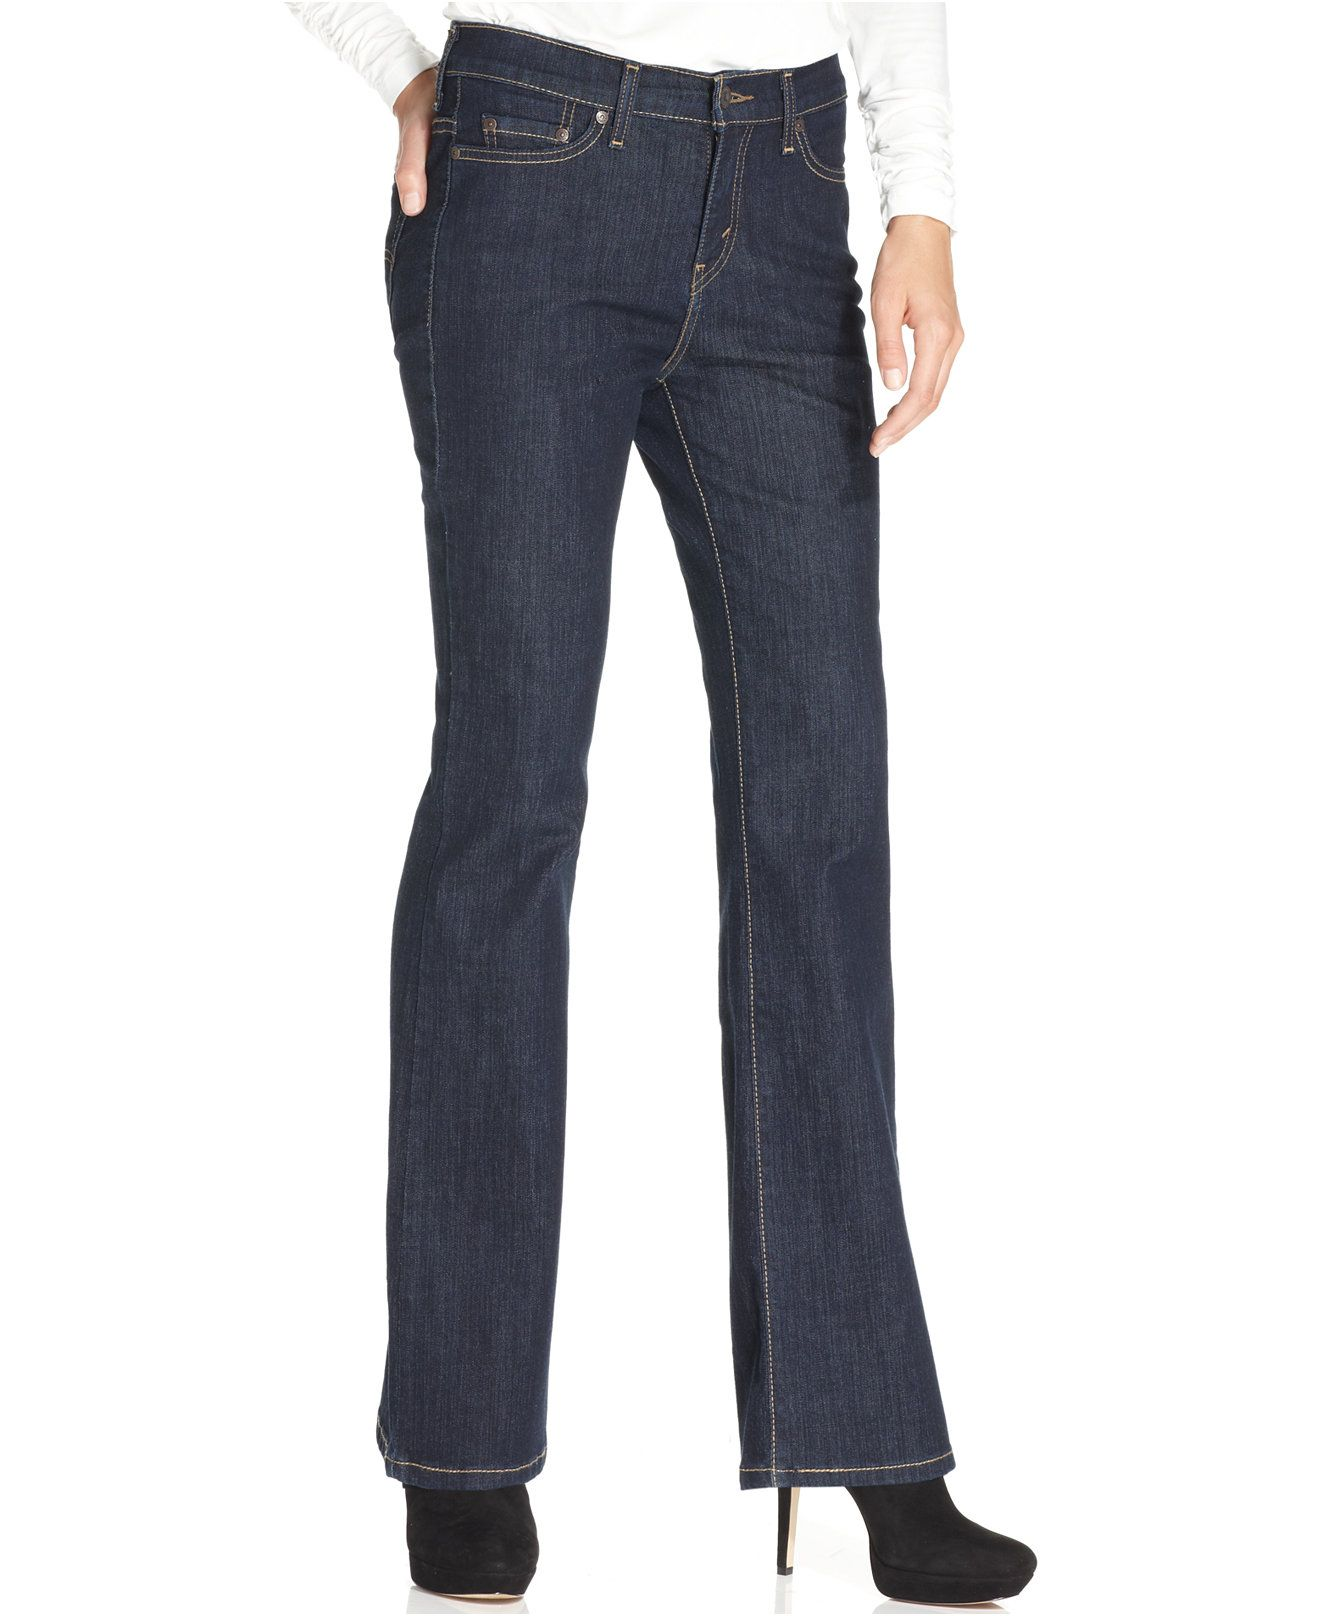 76a3a3f6 Levi's 512 Perfectly Slimming Bootcut Jeans, Indigo Rinse Wash - Jeans -  Women - Macy's